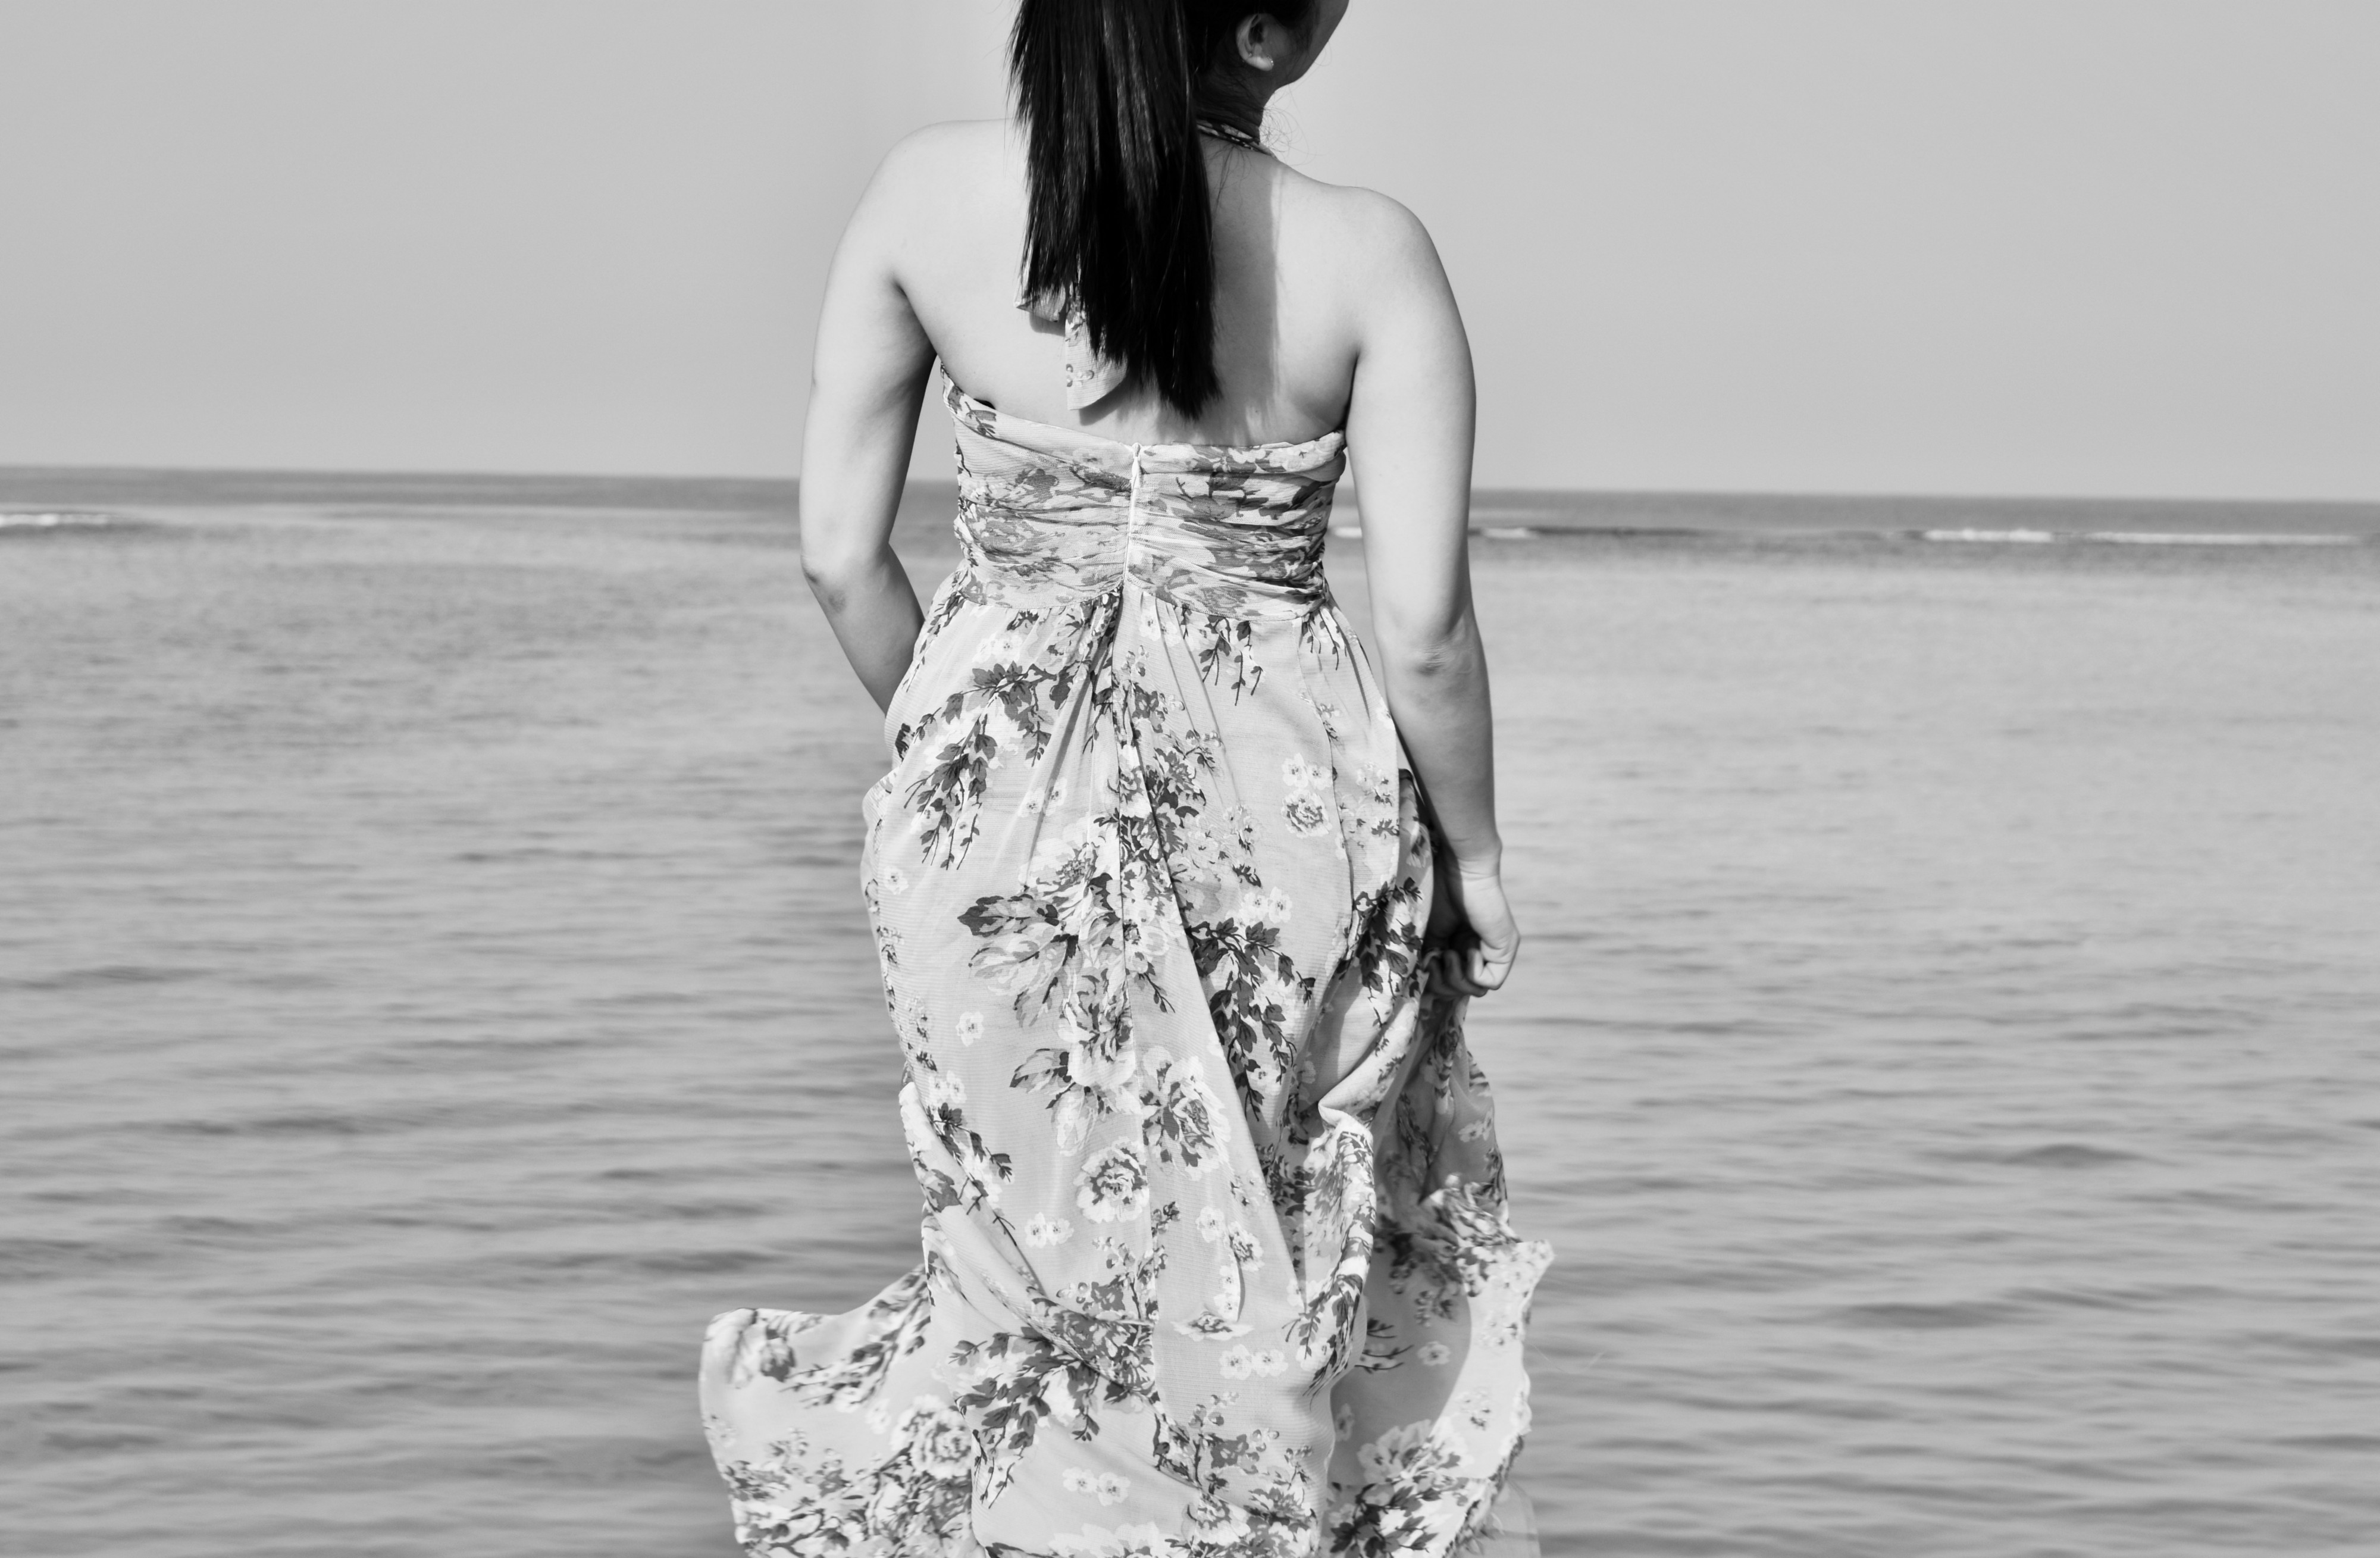 Back shot of a woman in dress floating above the sea